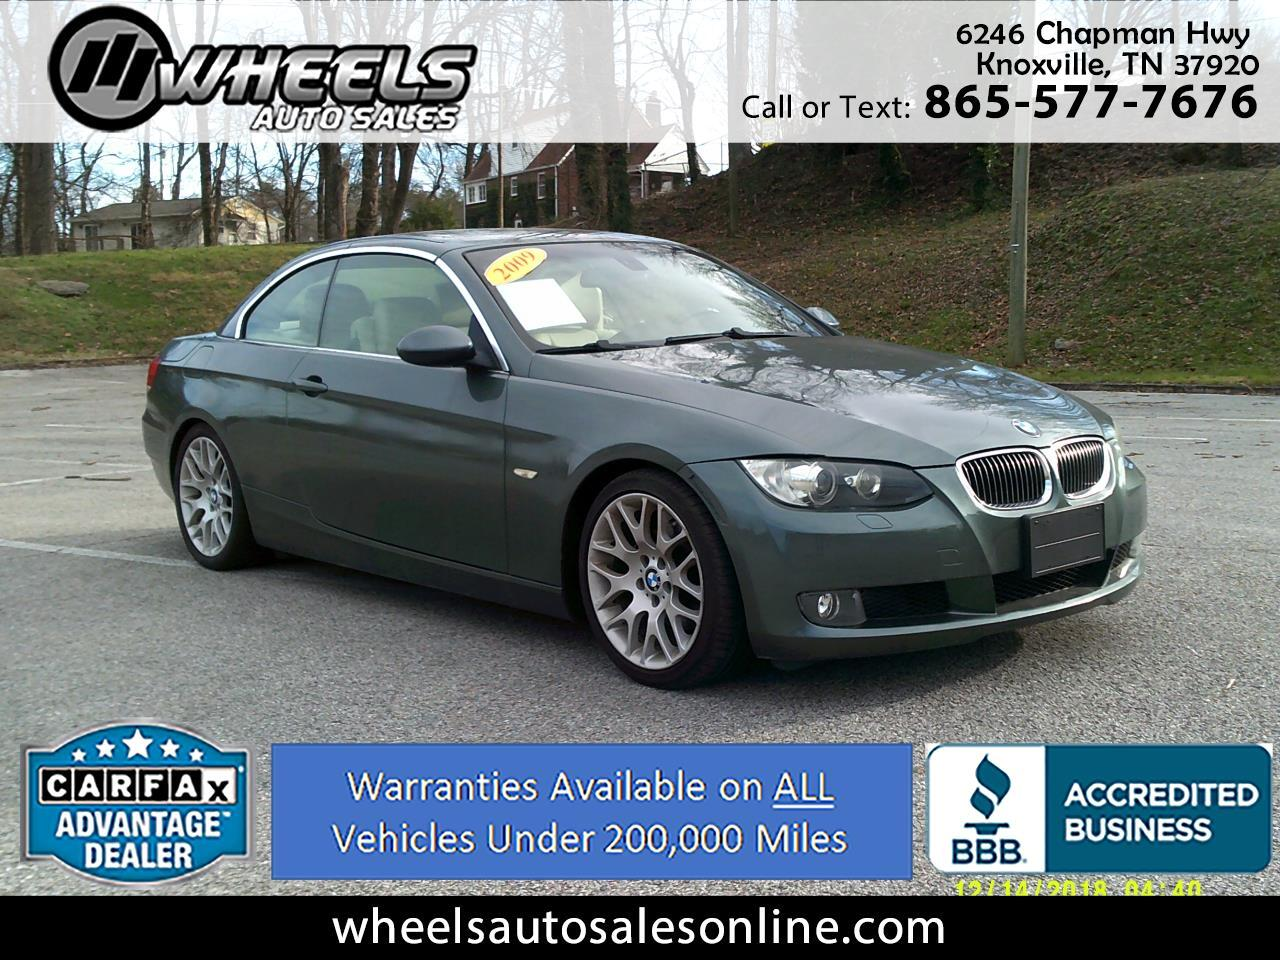 2009 BMW 3 Series 2dr Conv 328i